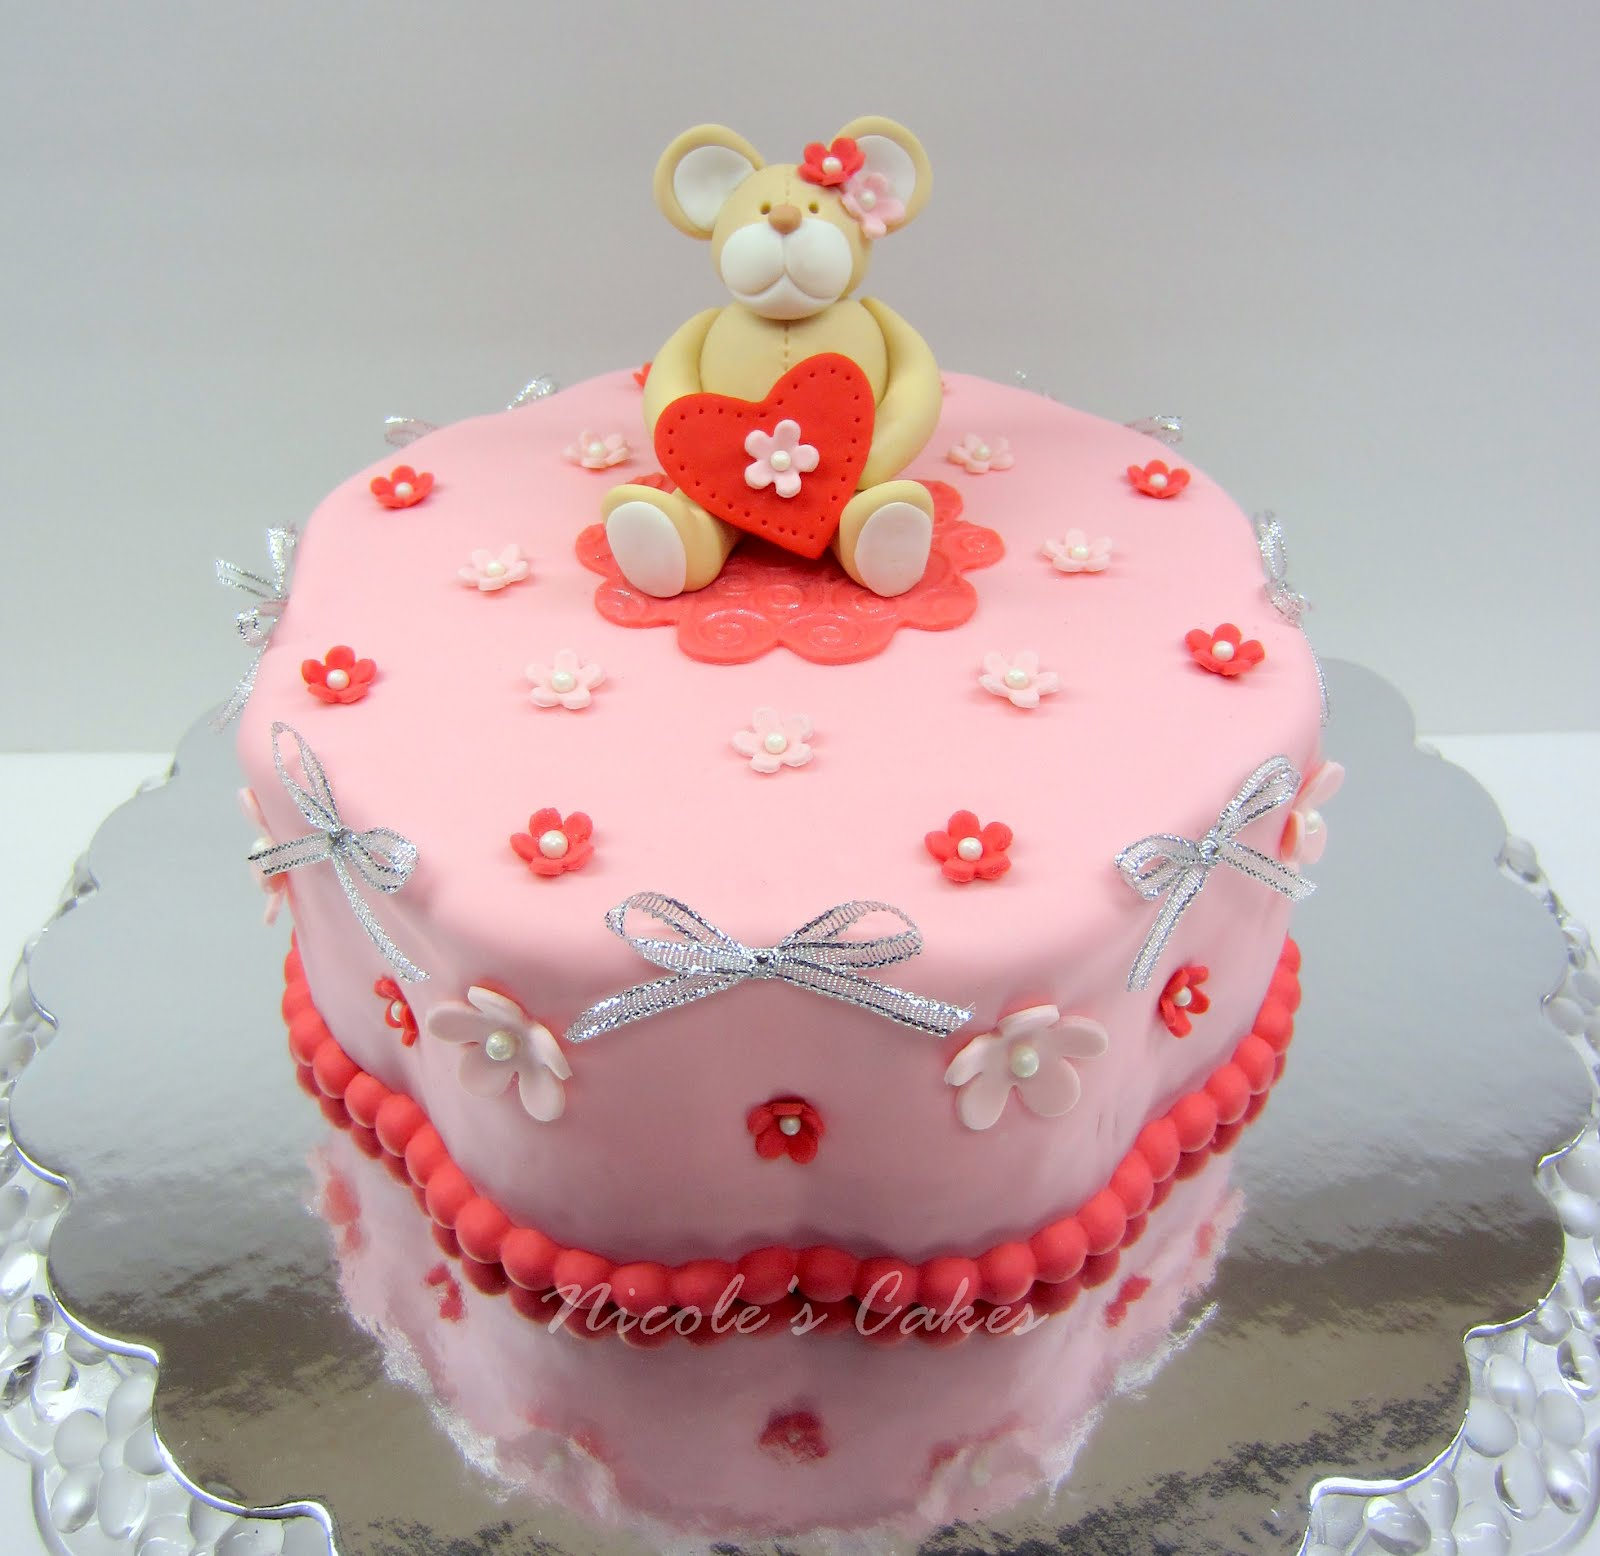 Confections, Cakes & Creations!: A Valentine s Birthday Cake